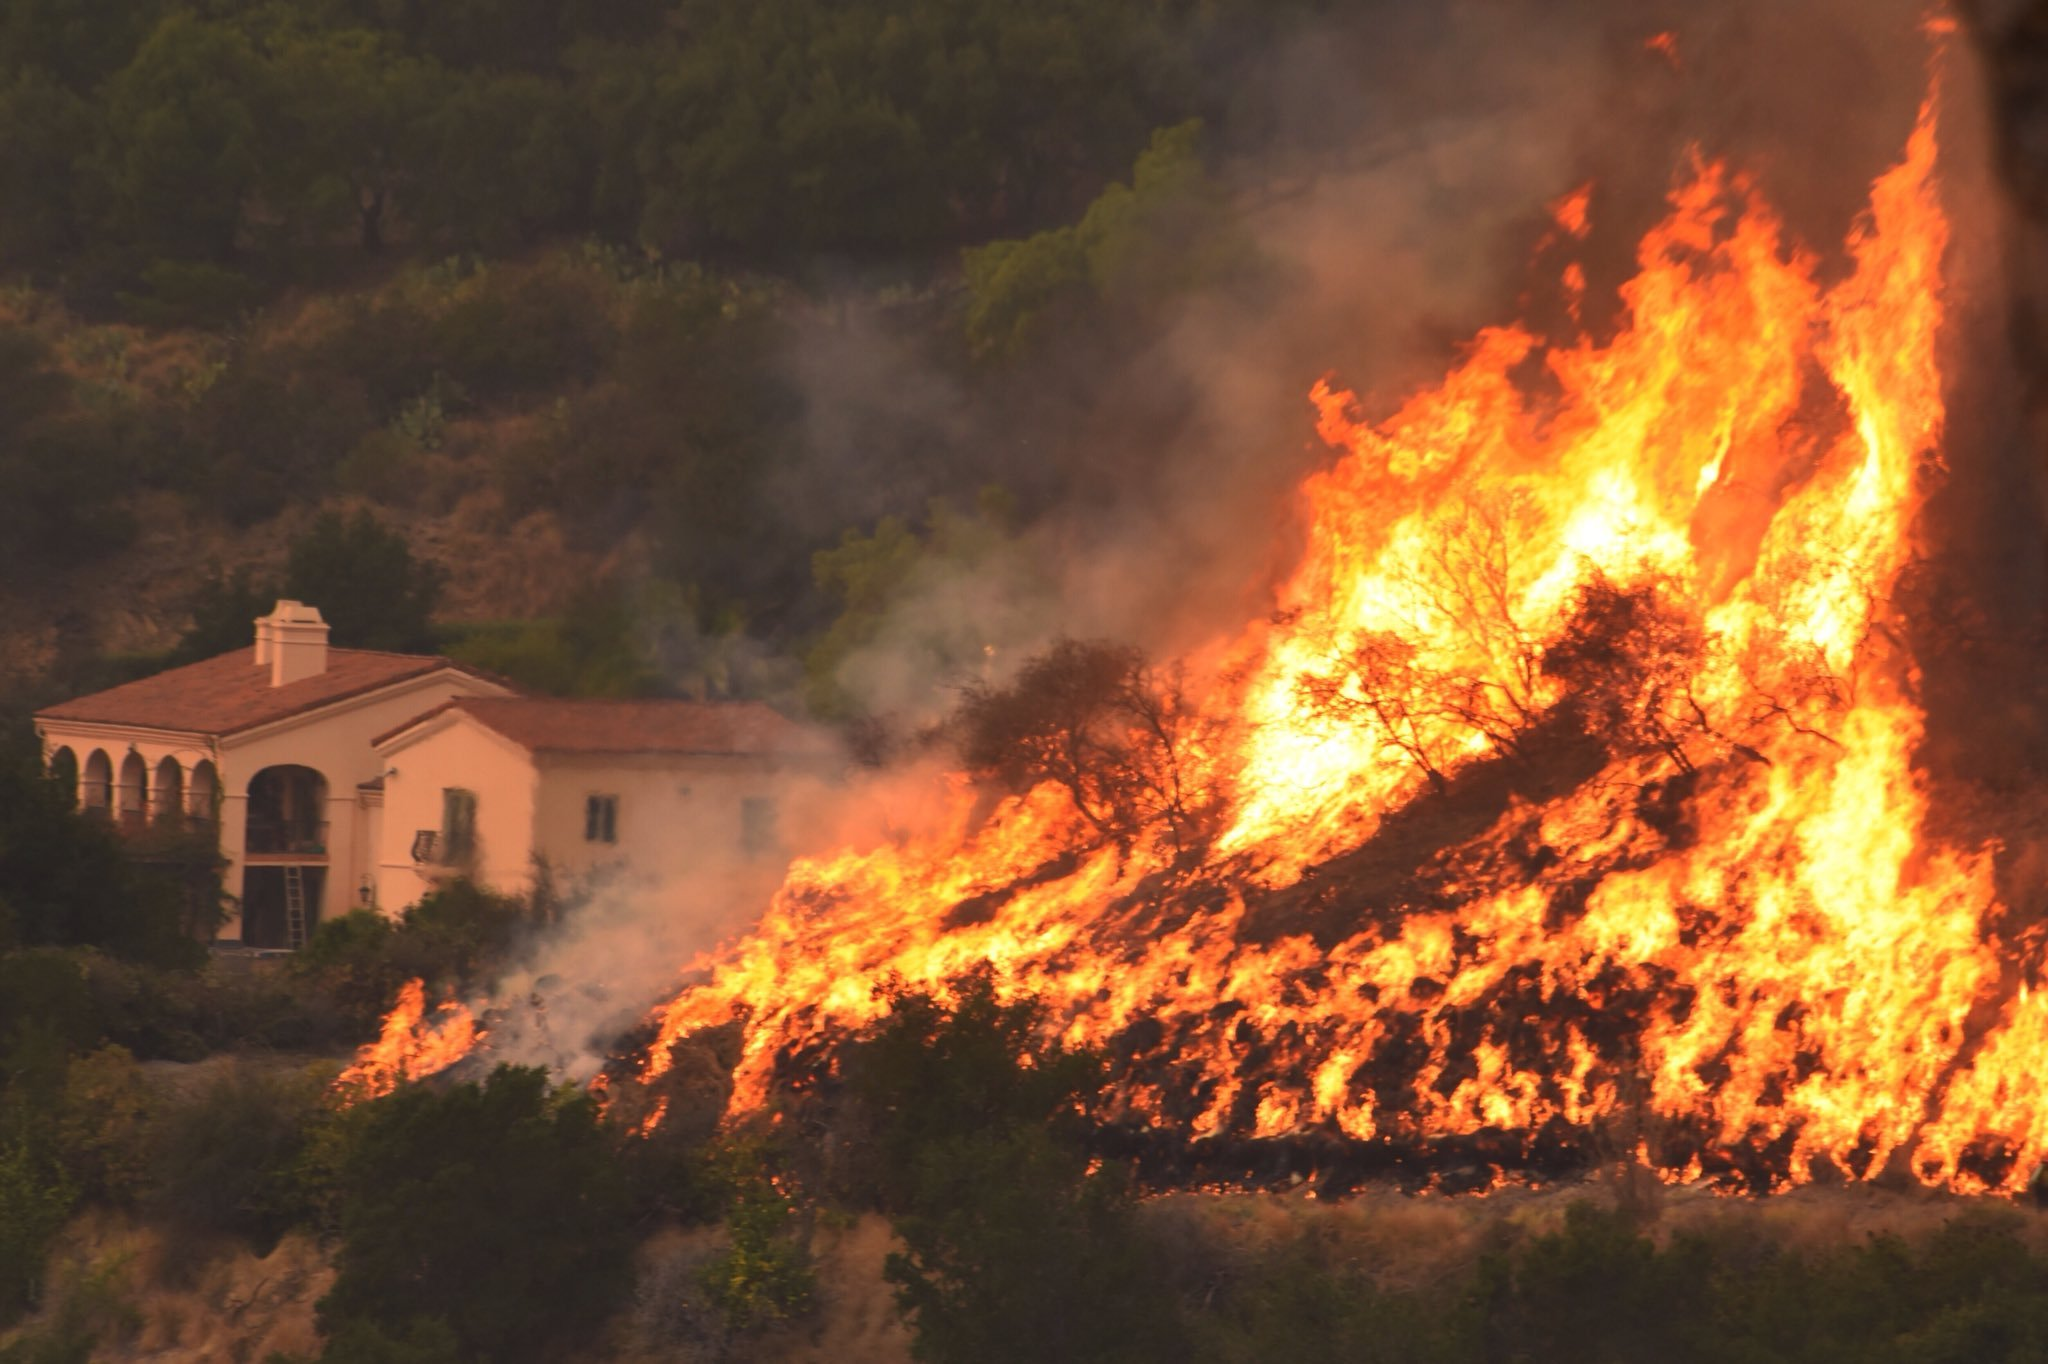 All significant California wildfire evacuation orders lifted